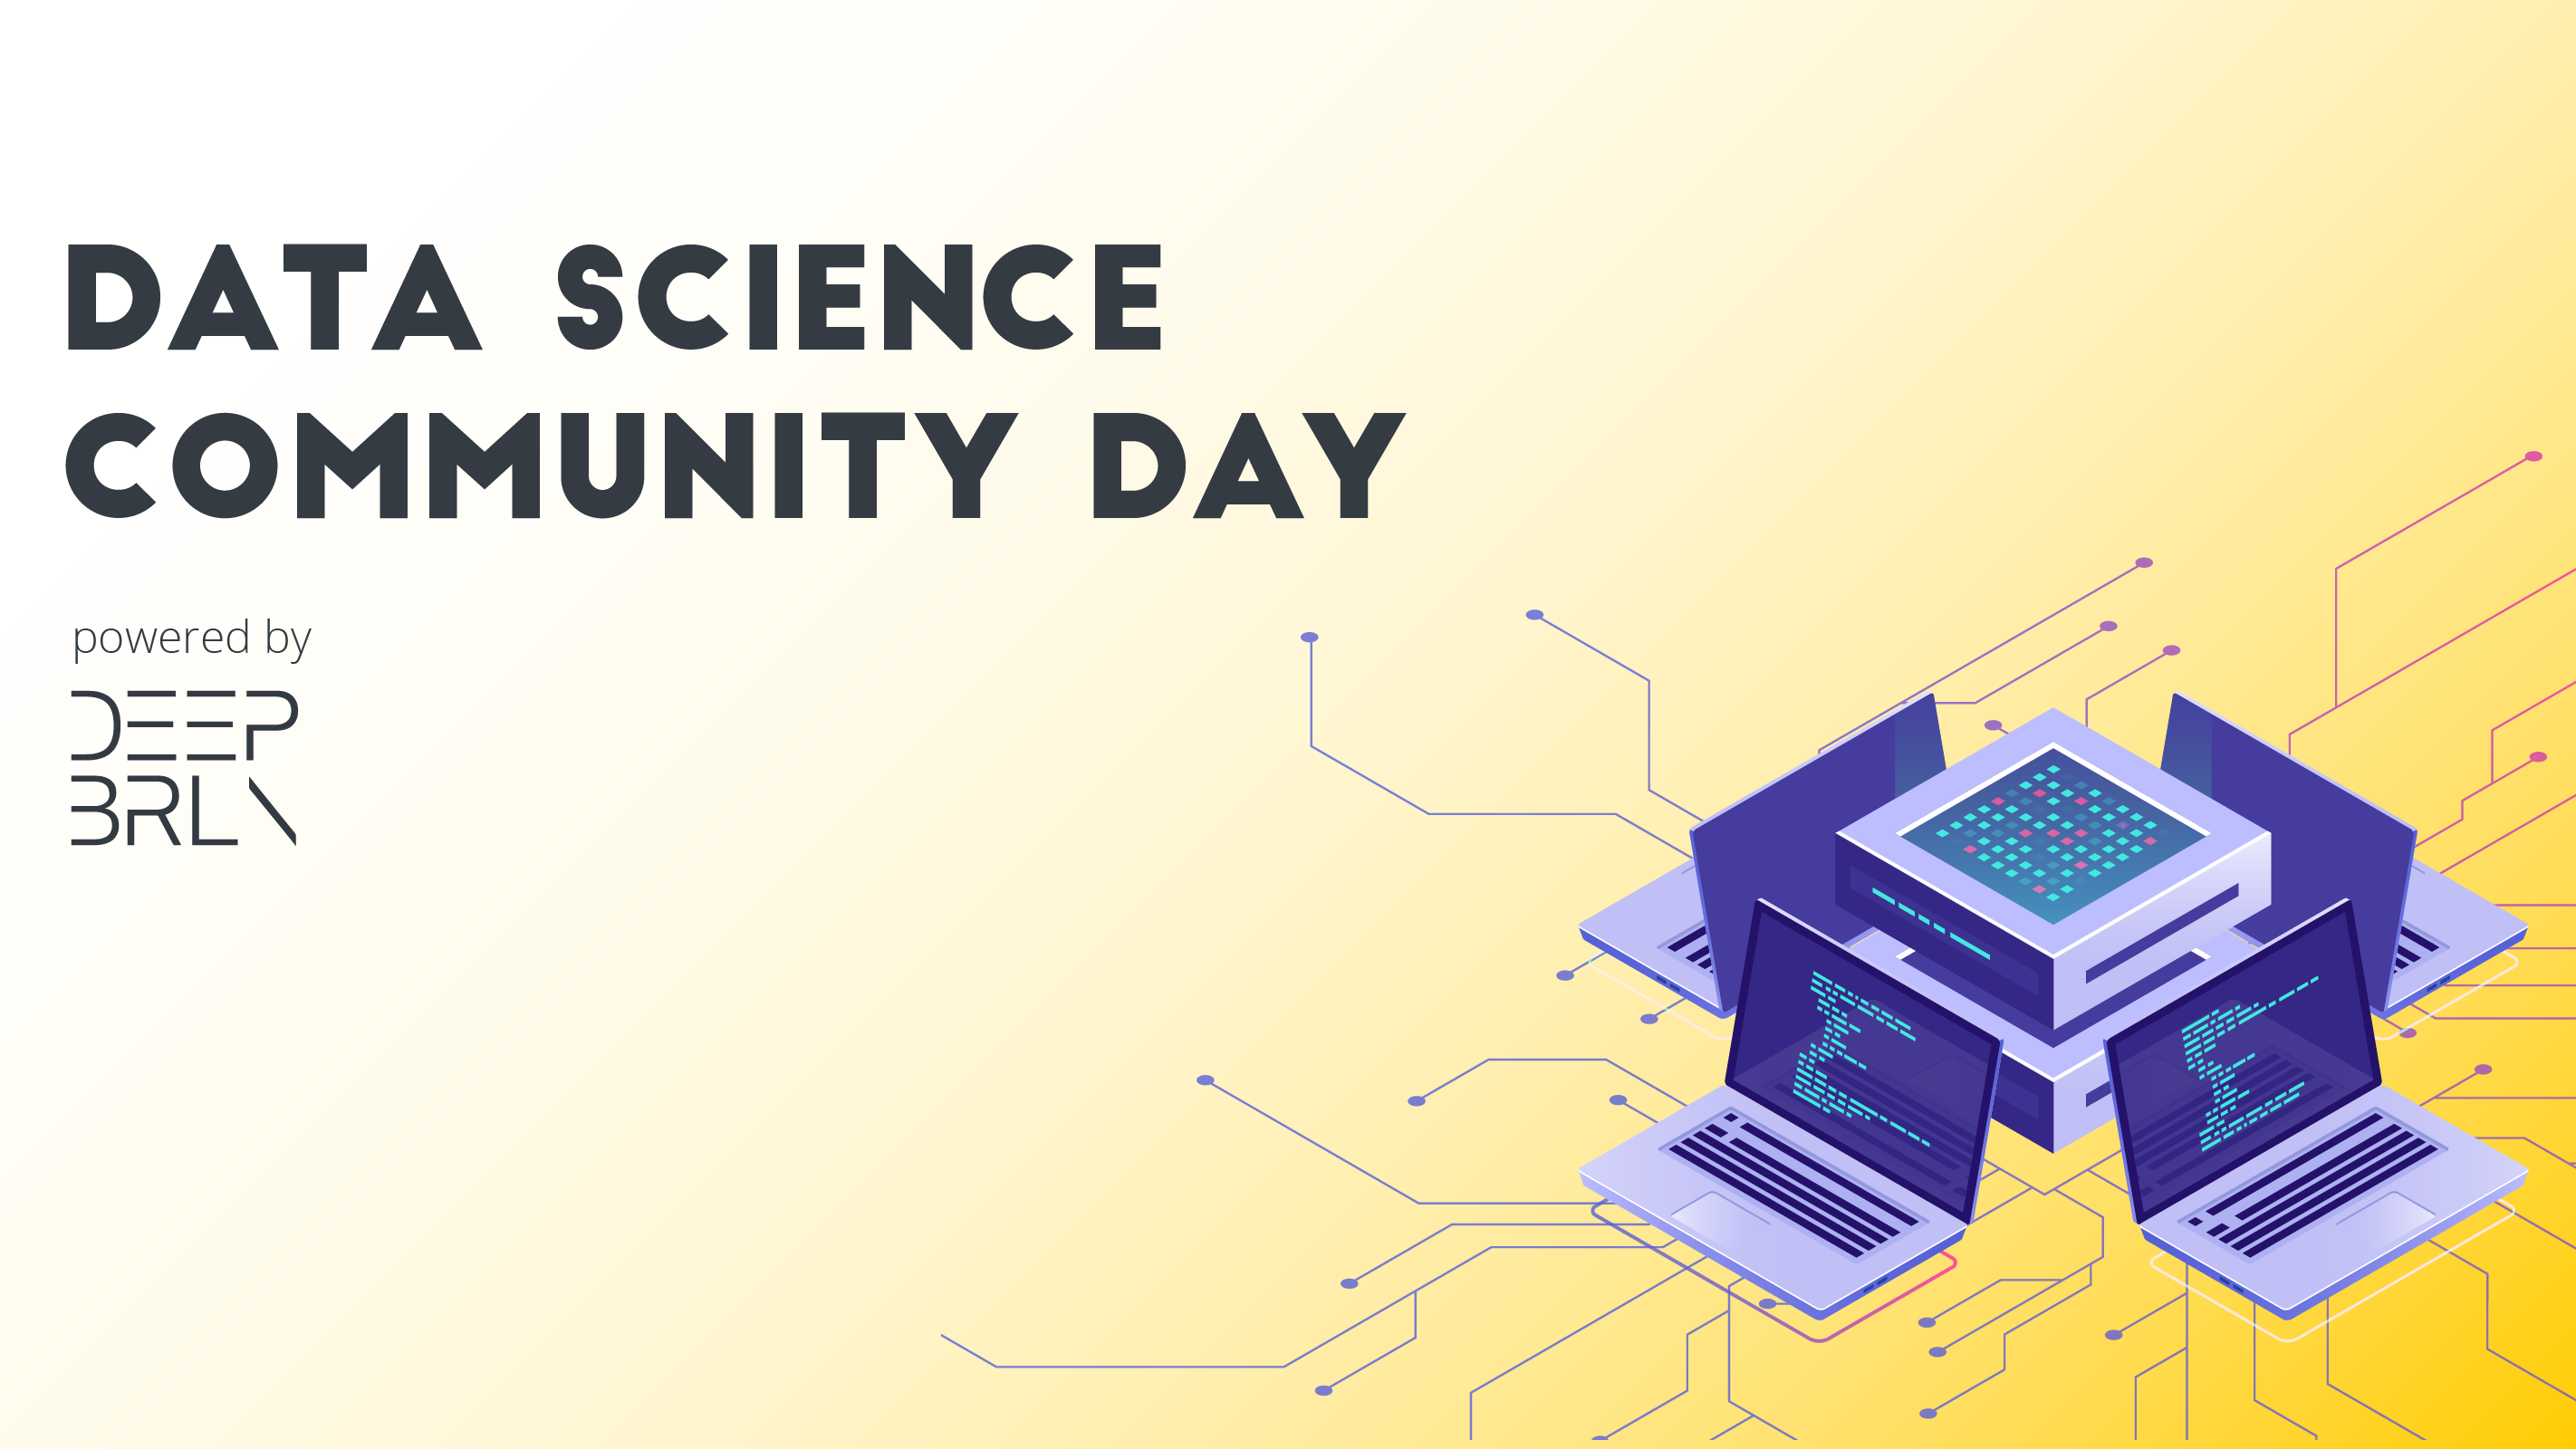 Data Science Community Day